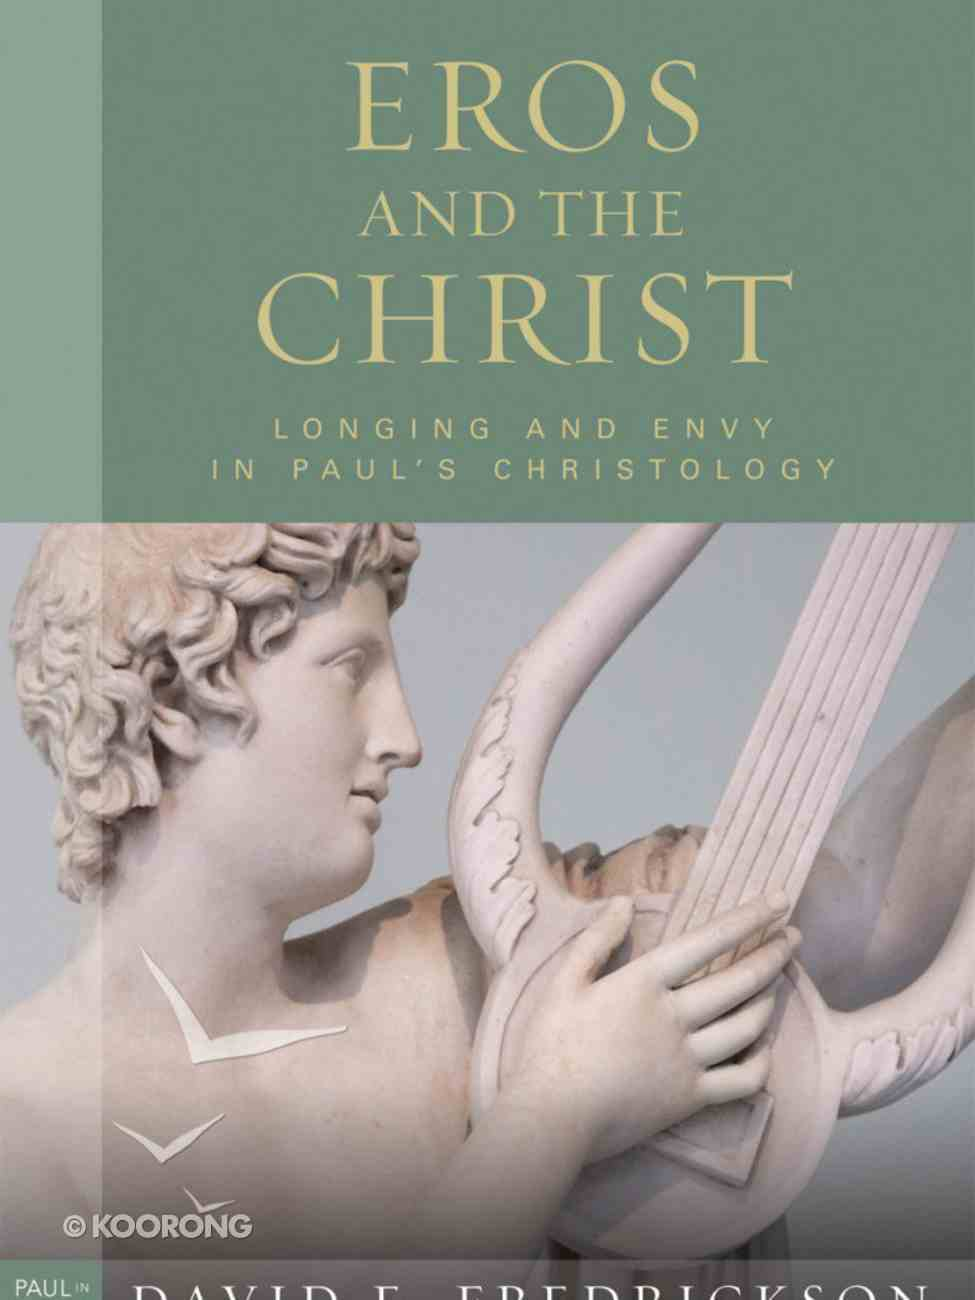 Eros and the Christ (Paul In Critical Contexts Series) eBook